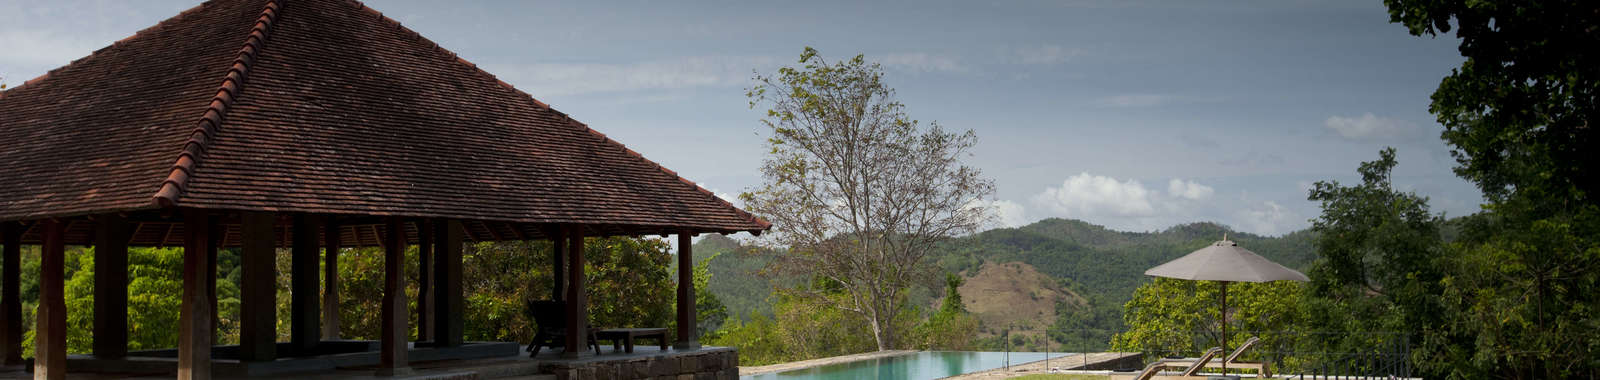 9 Living Heritage Koslanda, Hill Country, Sri Lanka